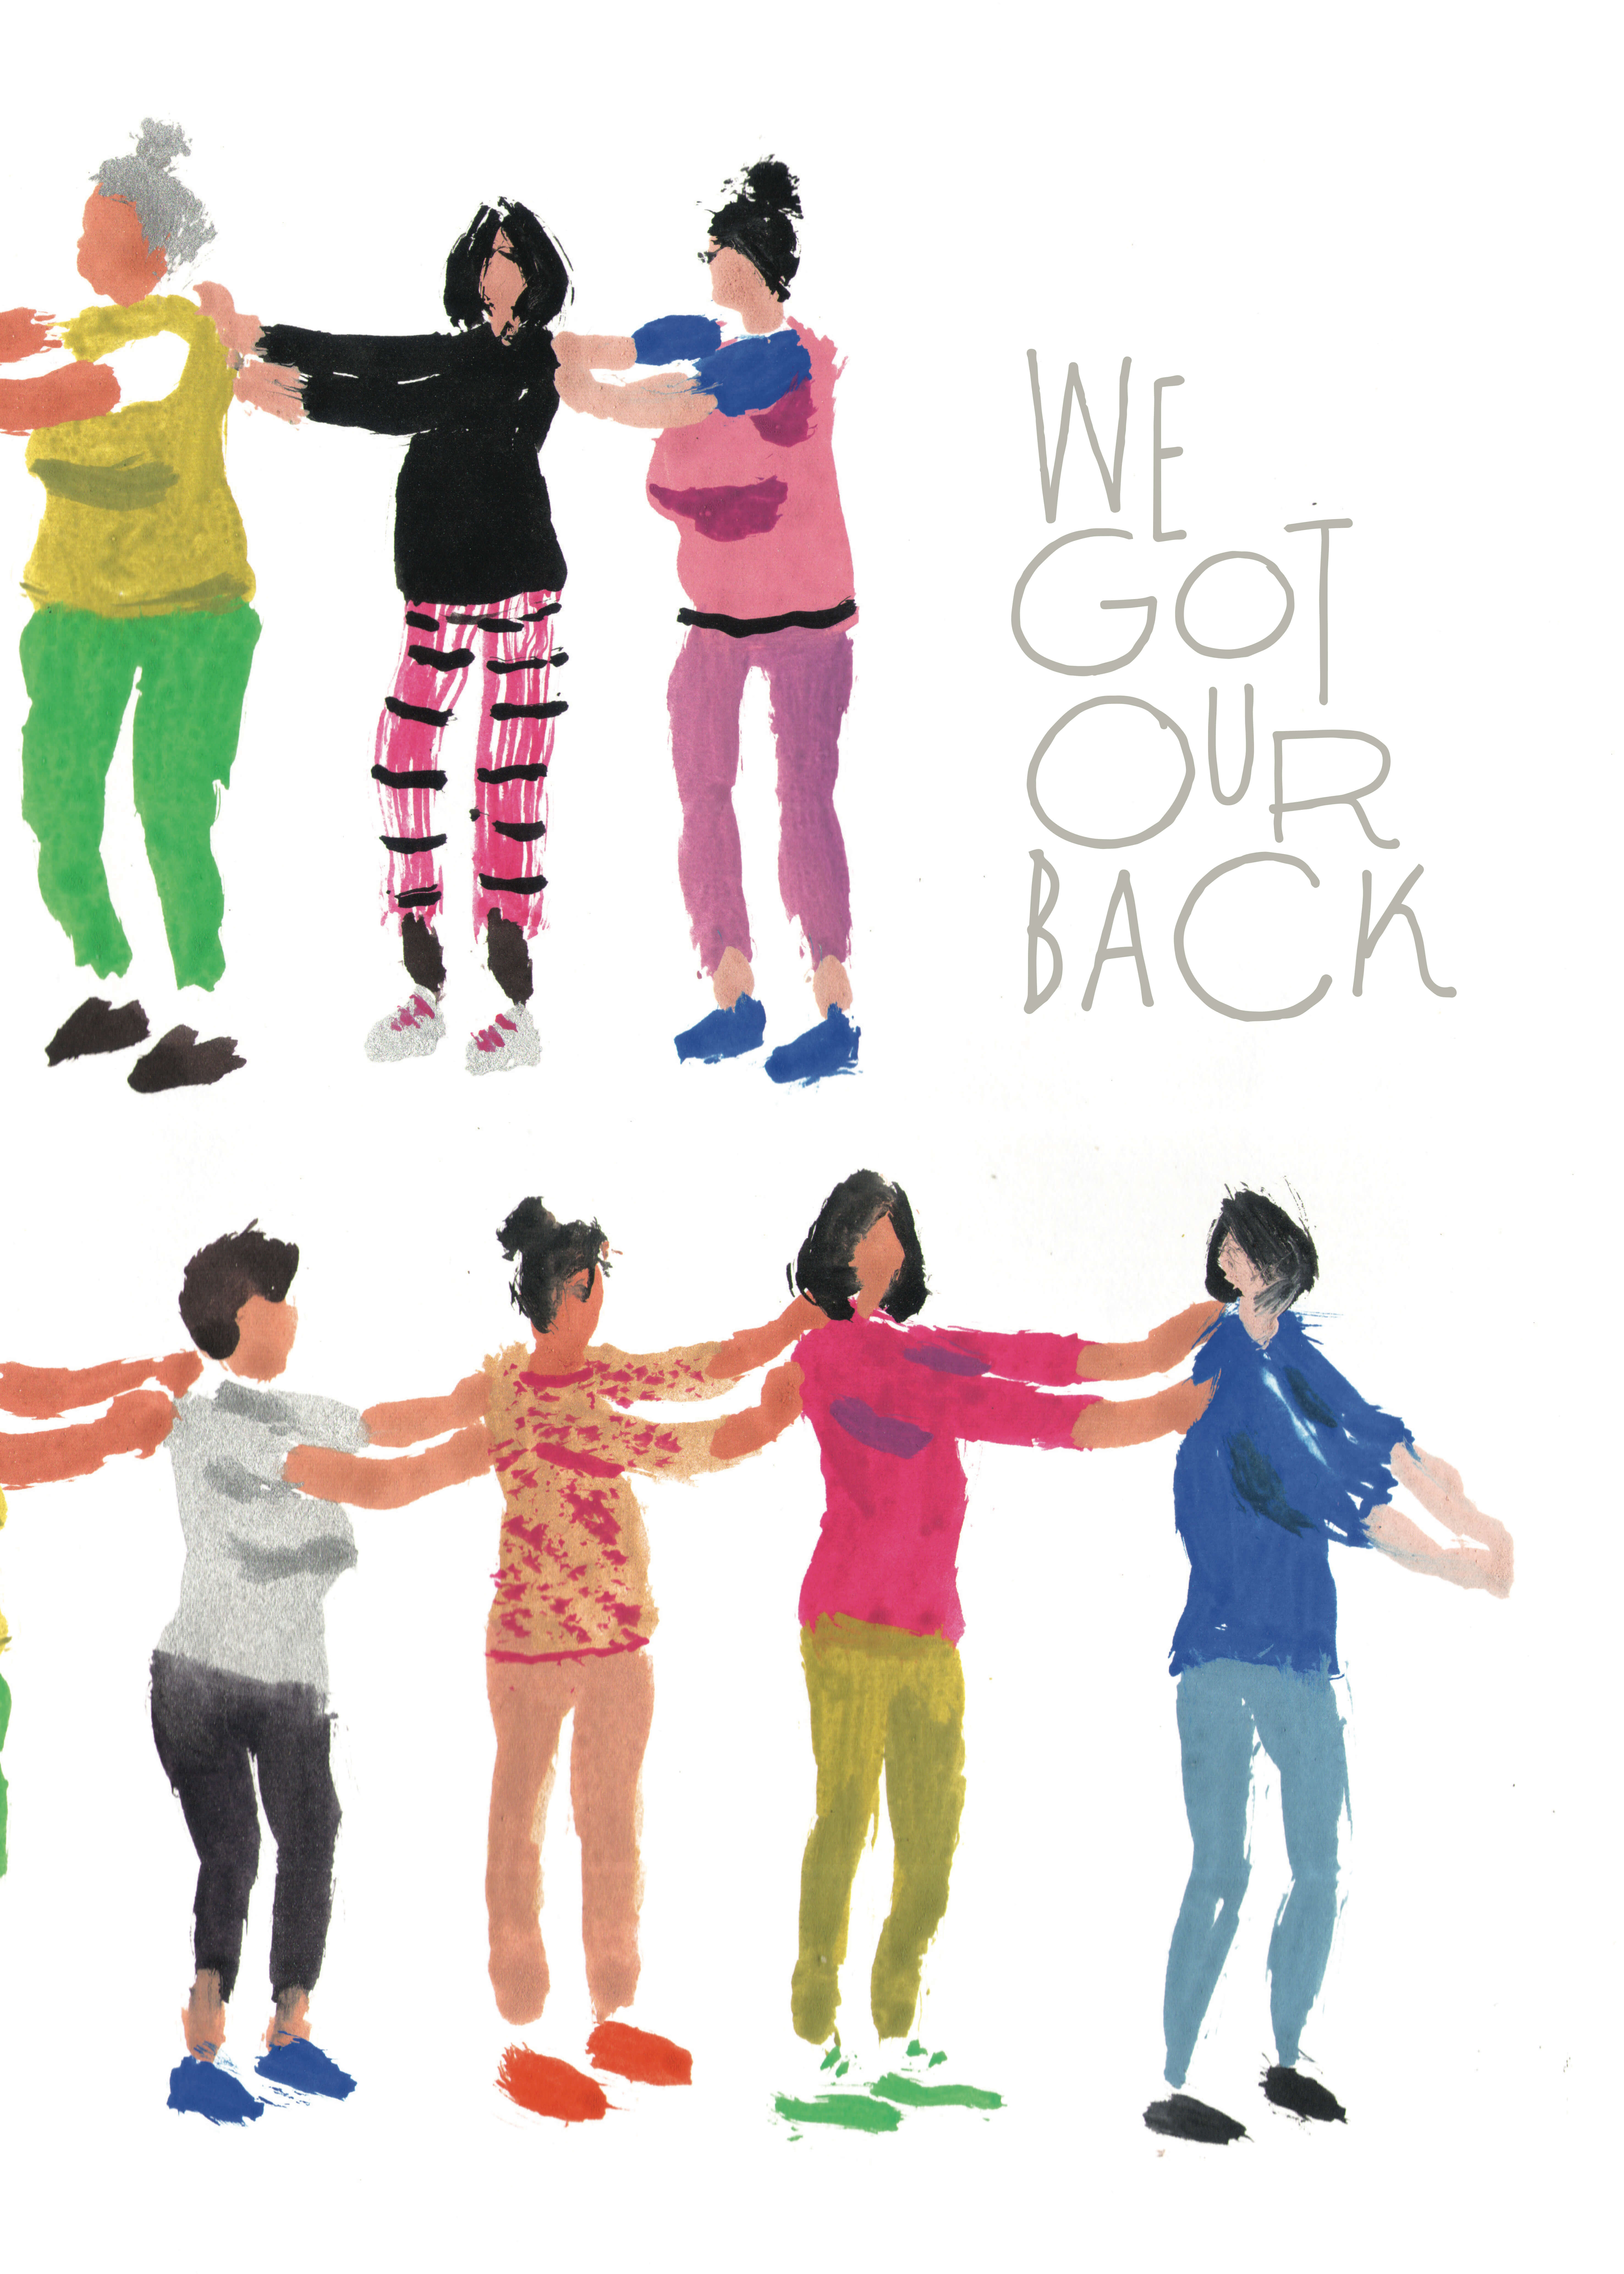 We Got Our Back (series 1/2) main image